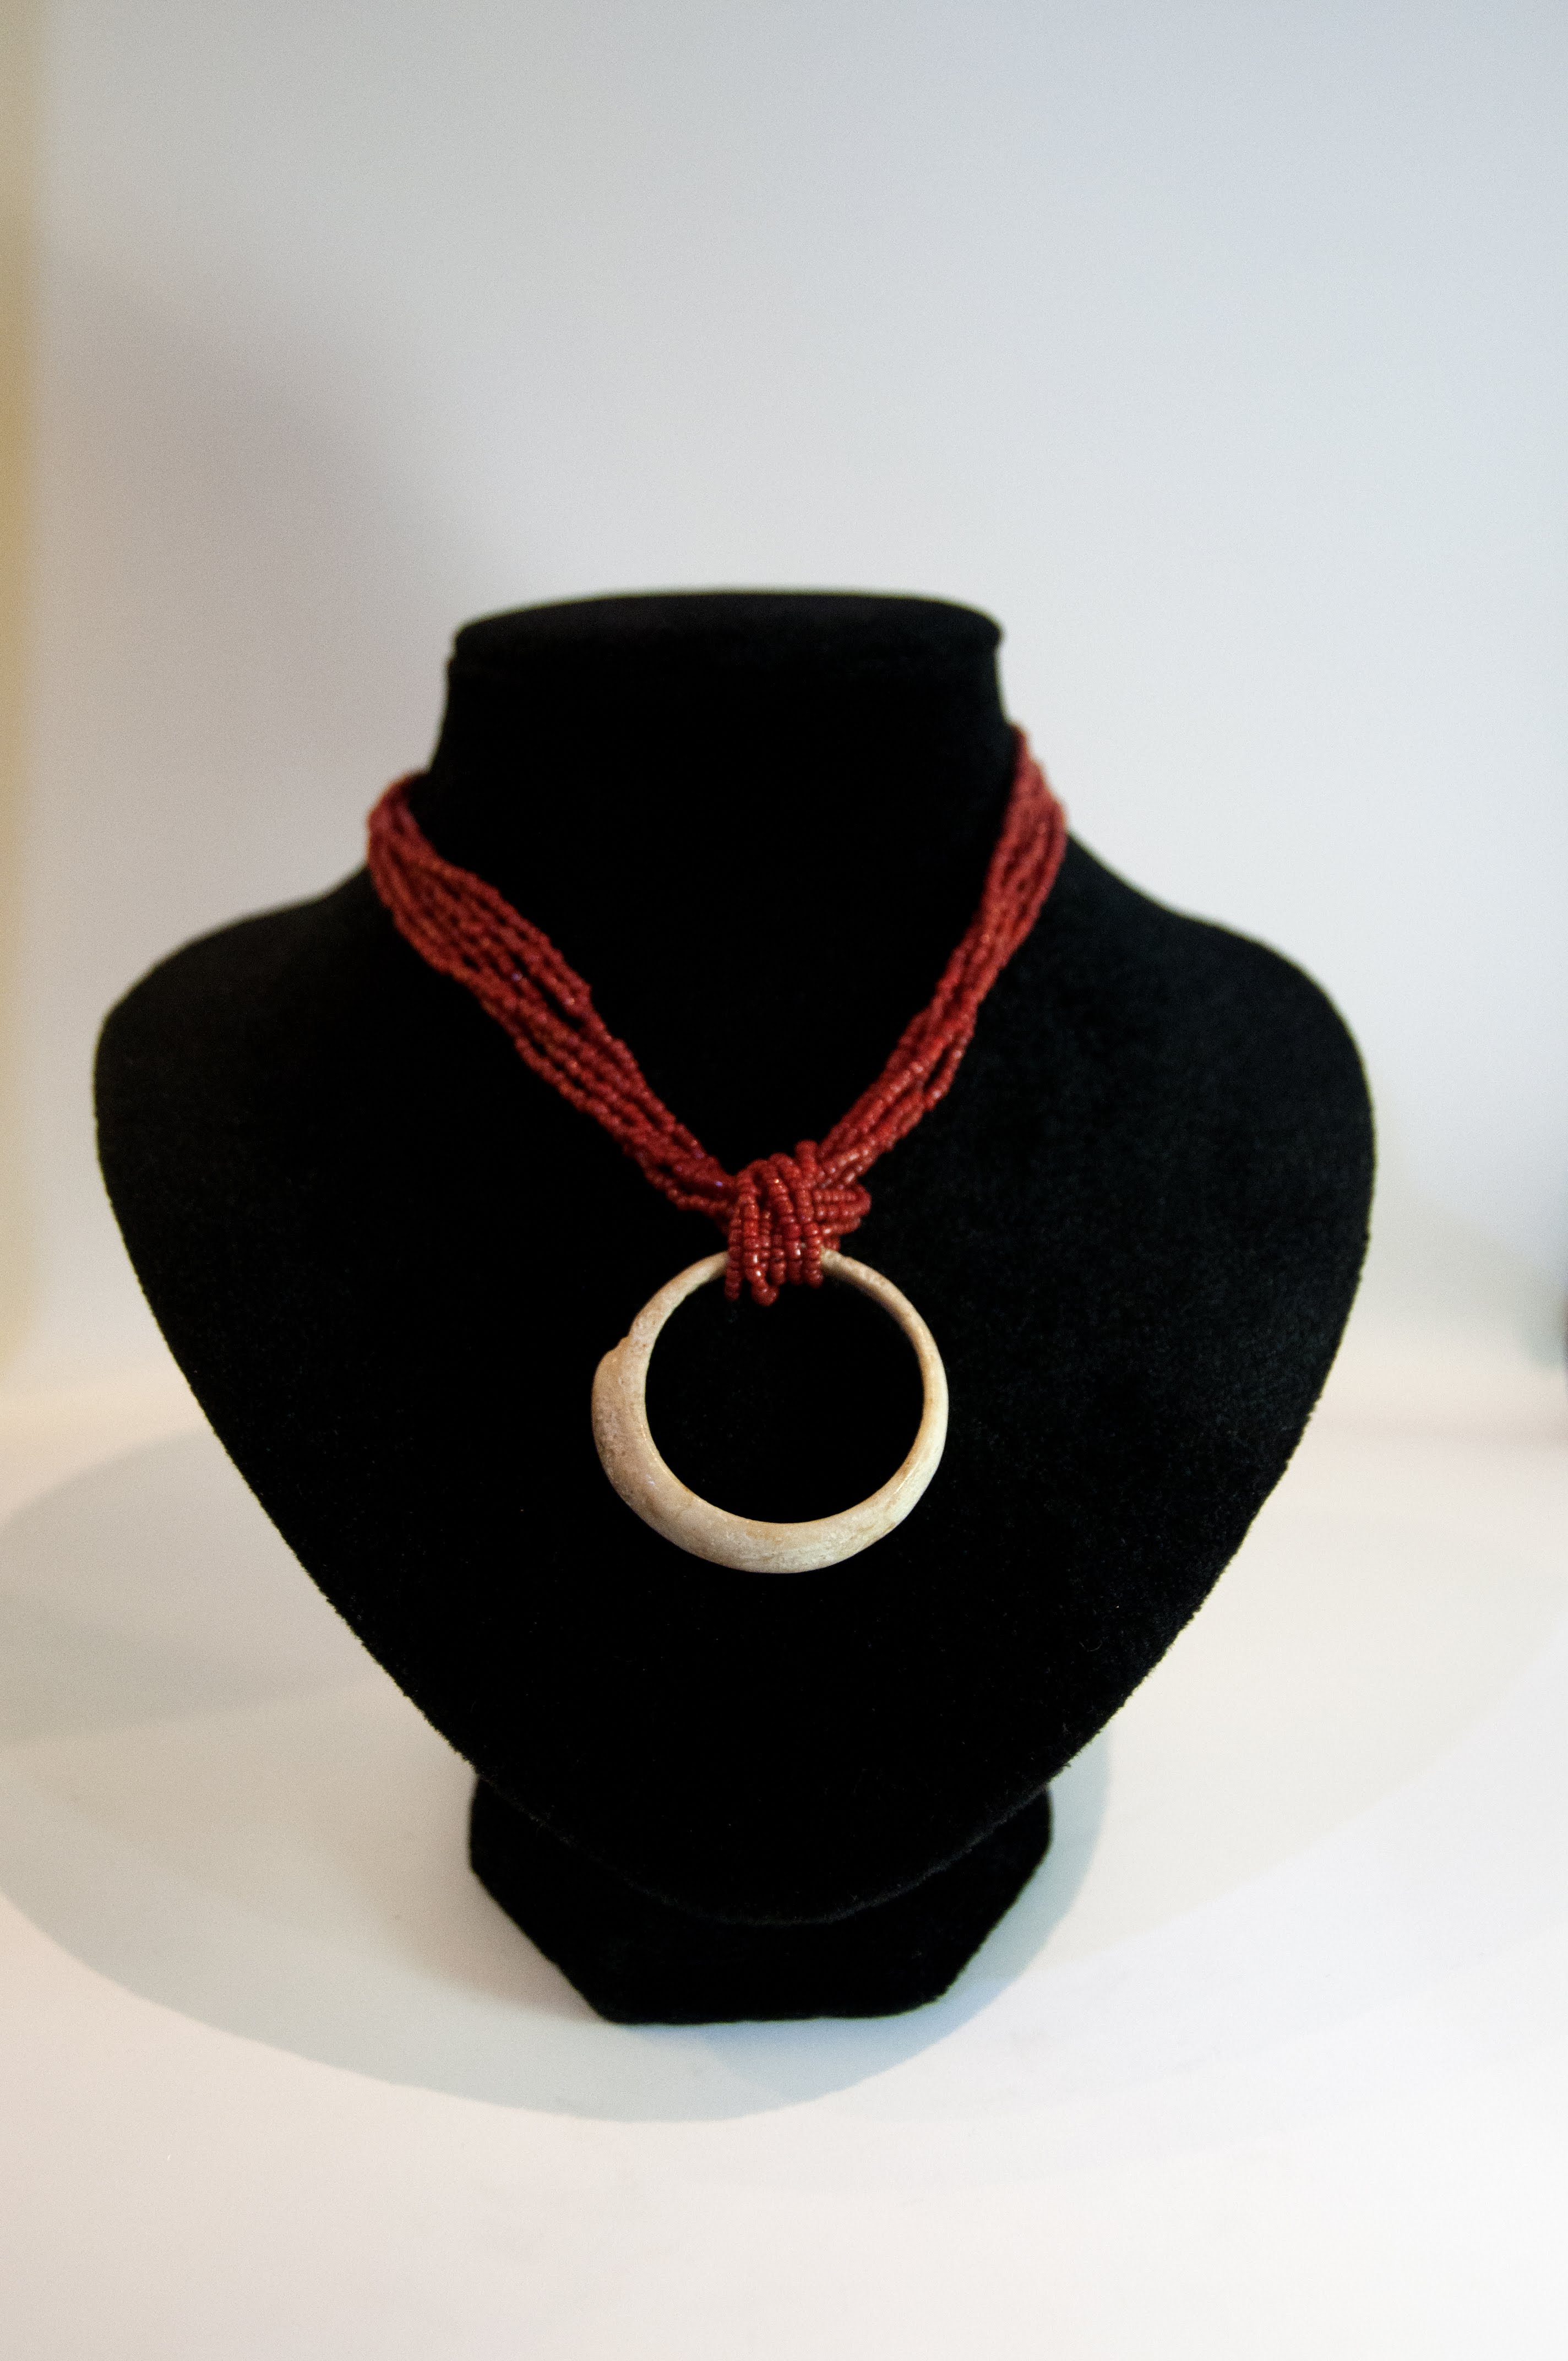 Jewelry Necklace Choker Shell Fossil Pendant w Red Coral Beads 15D